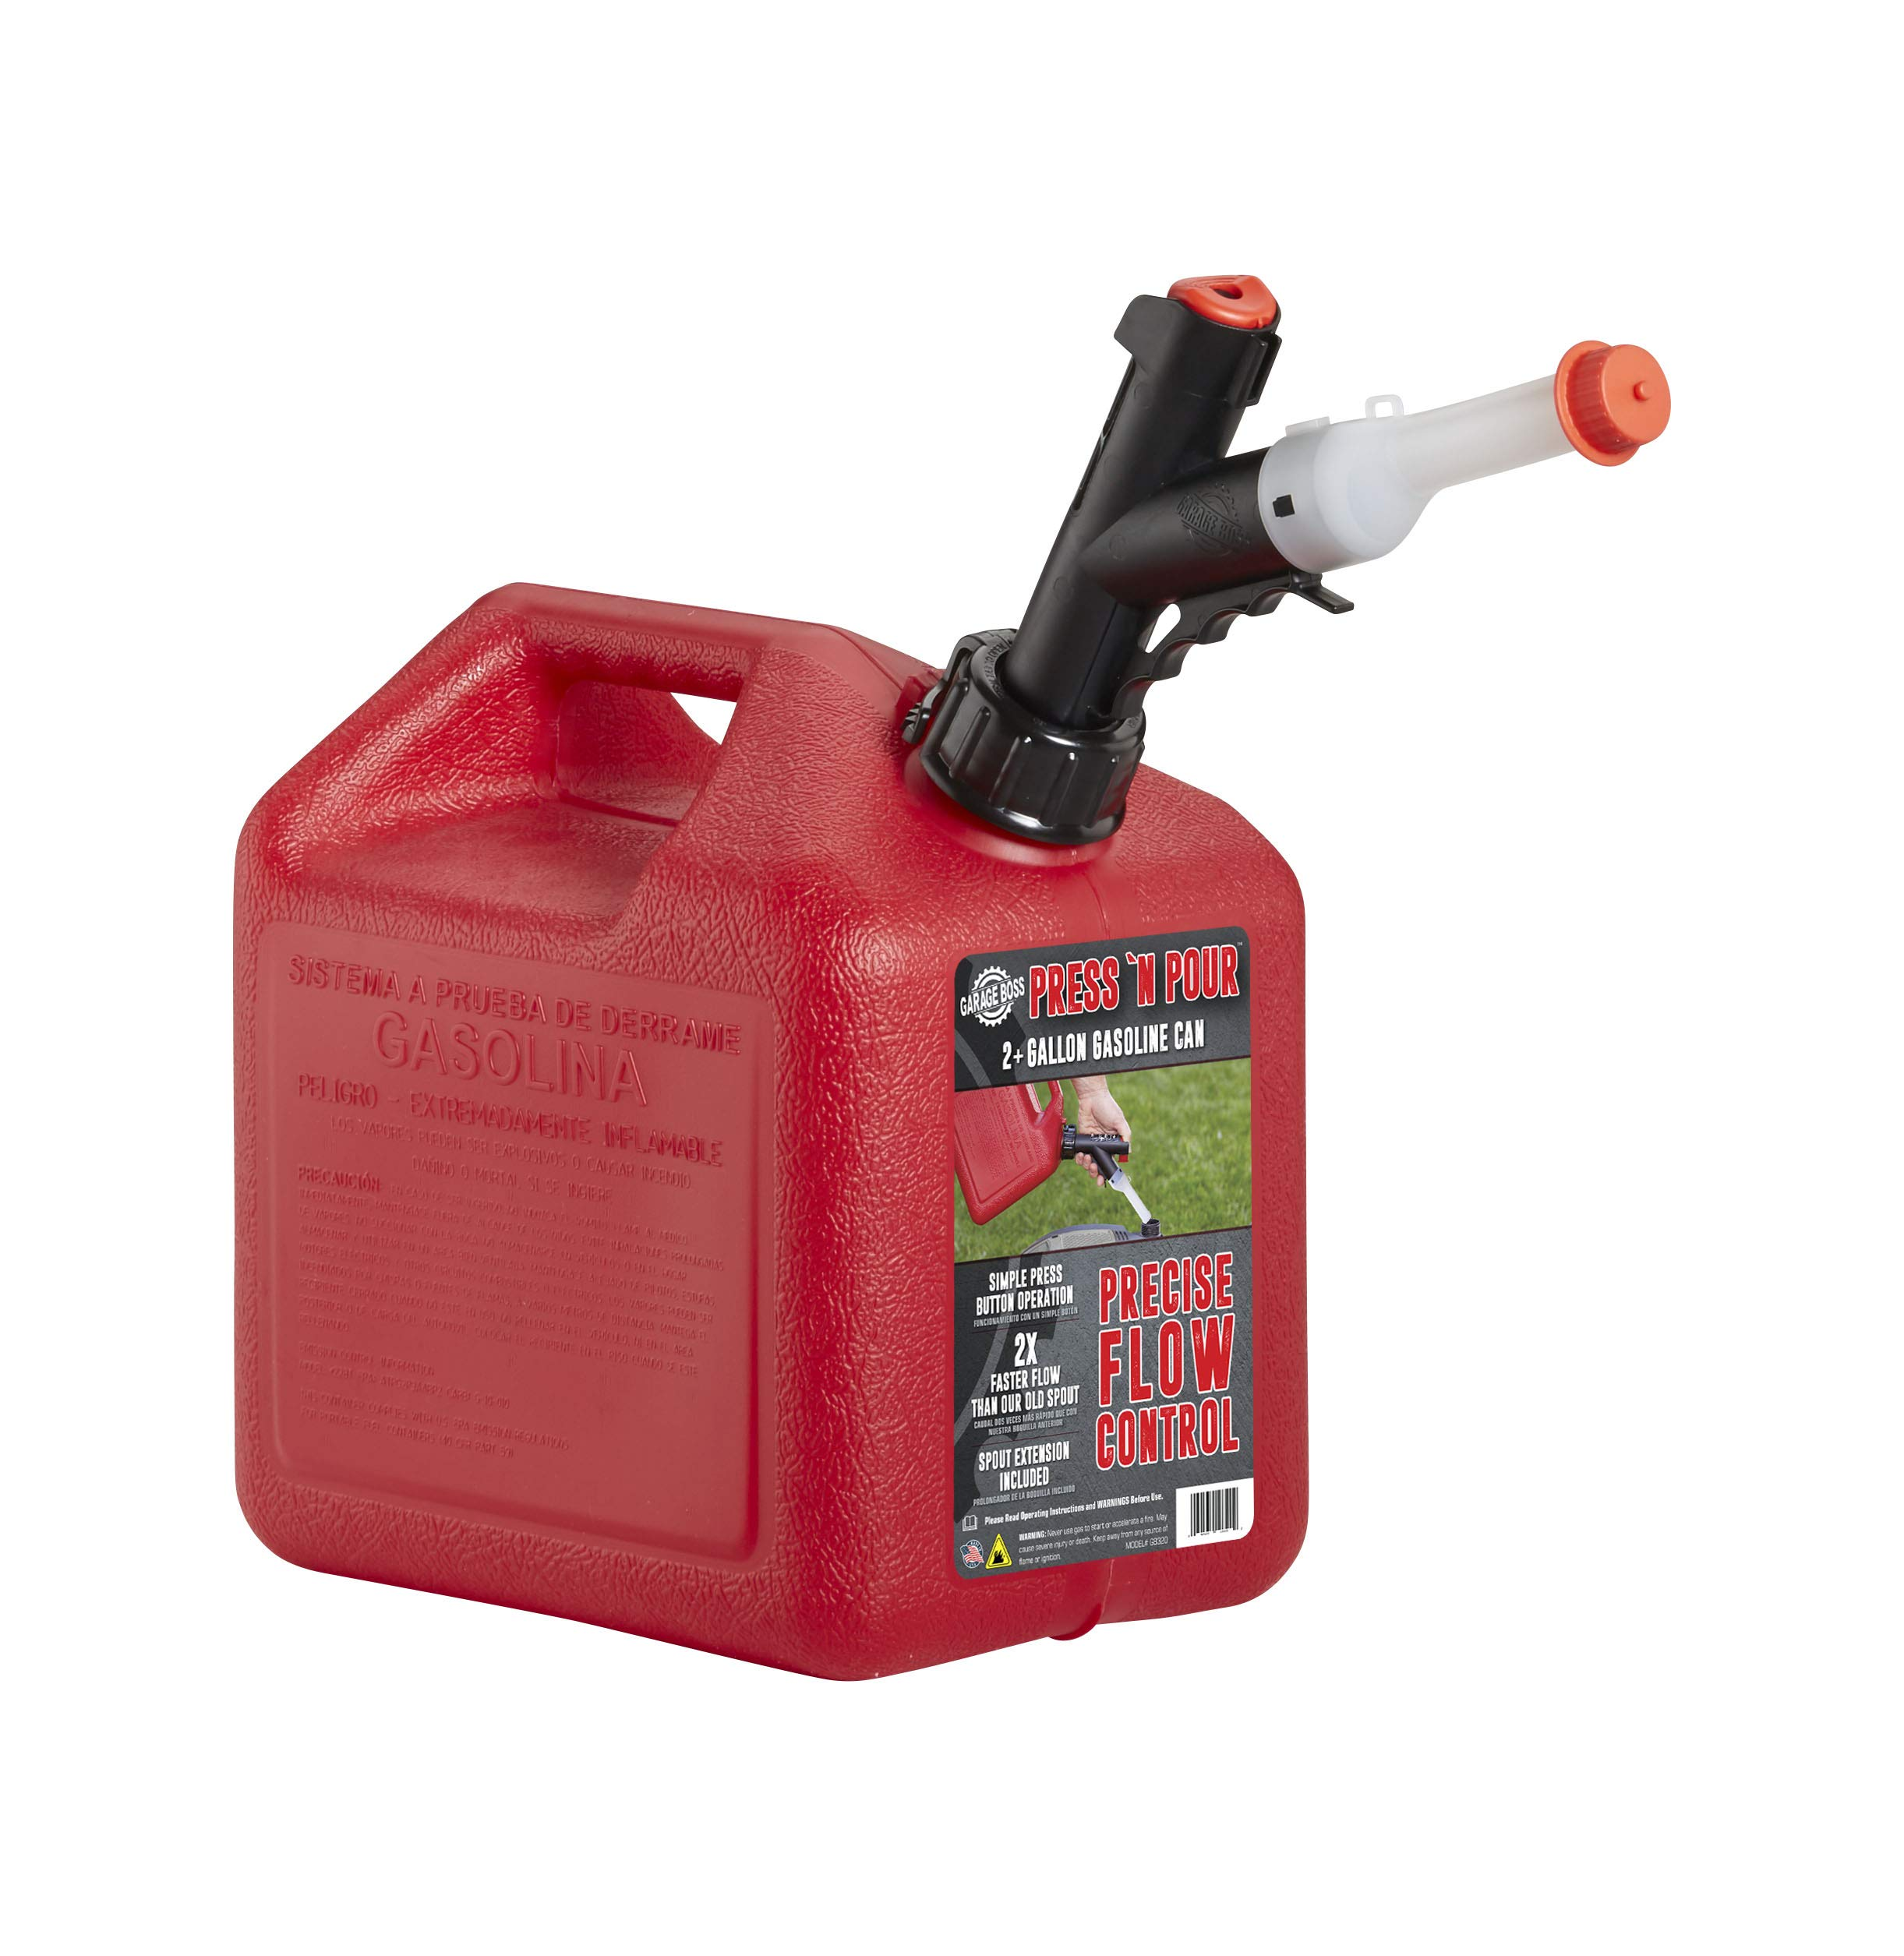 GARAGE BOSS GB320 Briggs and Stratton Press 'N Pour Gas Can, 2+ Gallon, Red by GARAGE BOSS